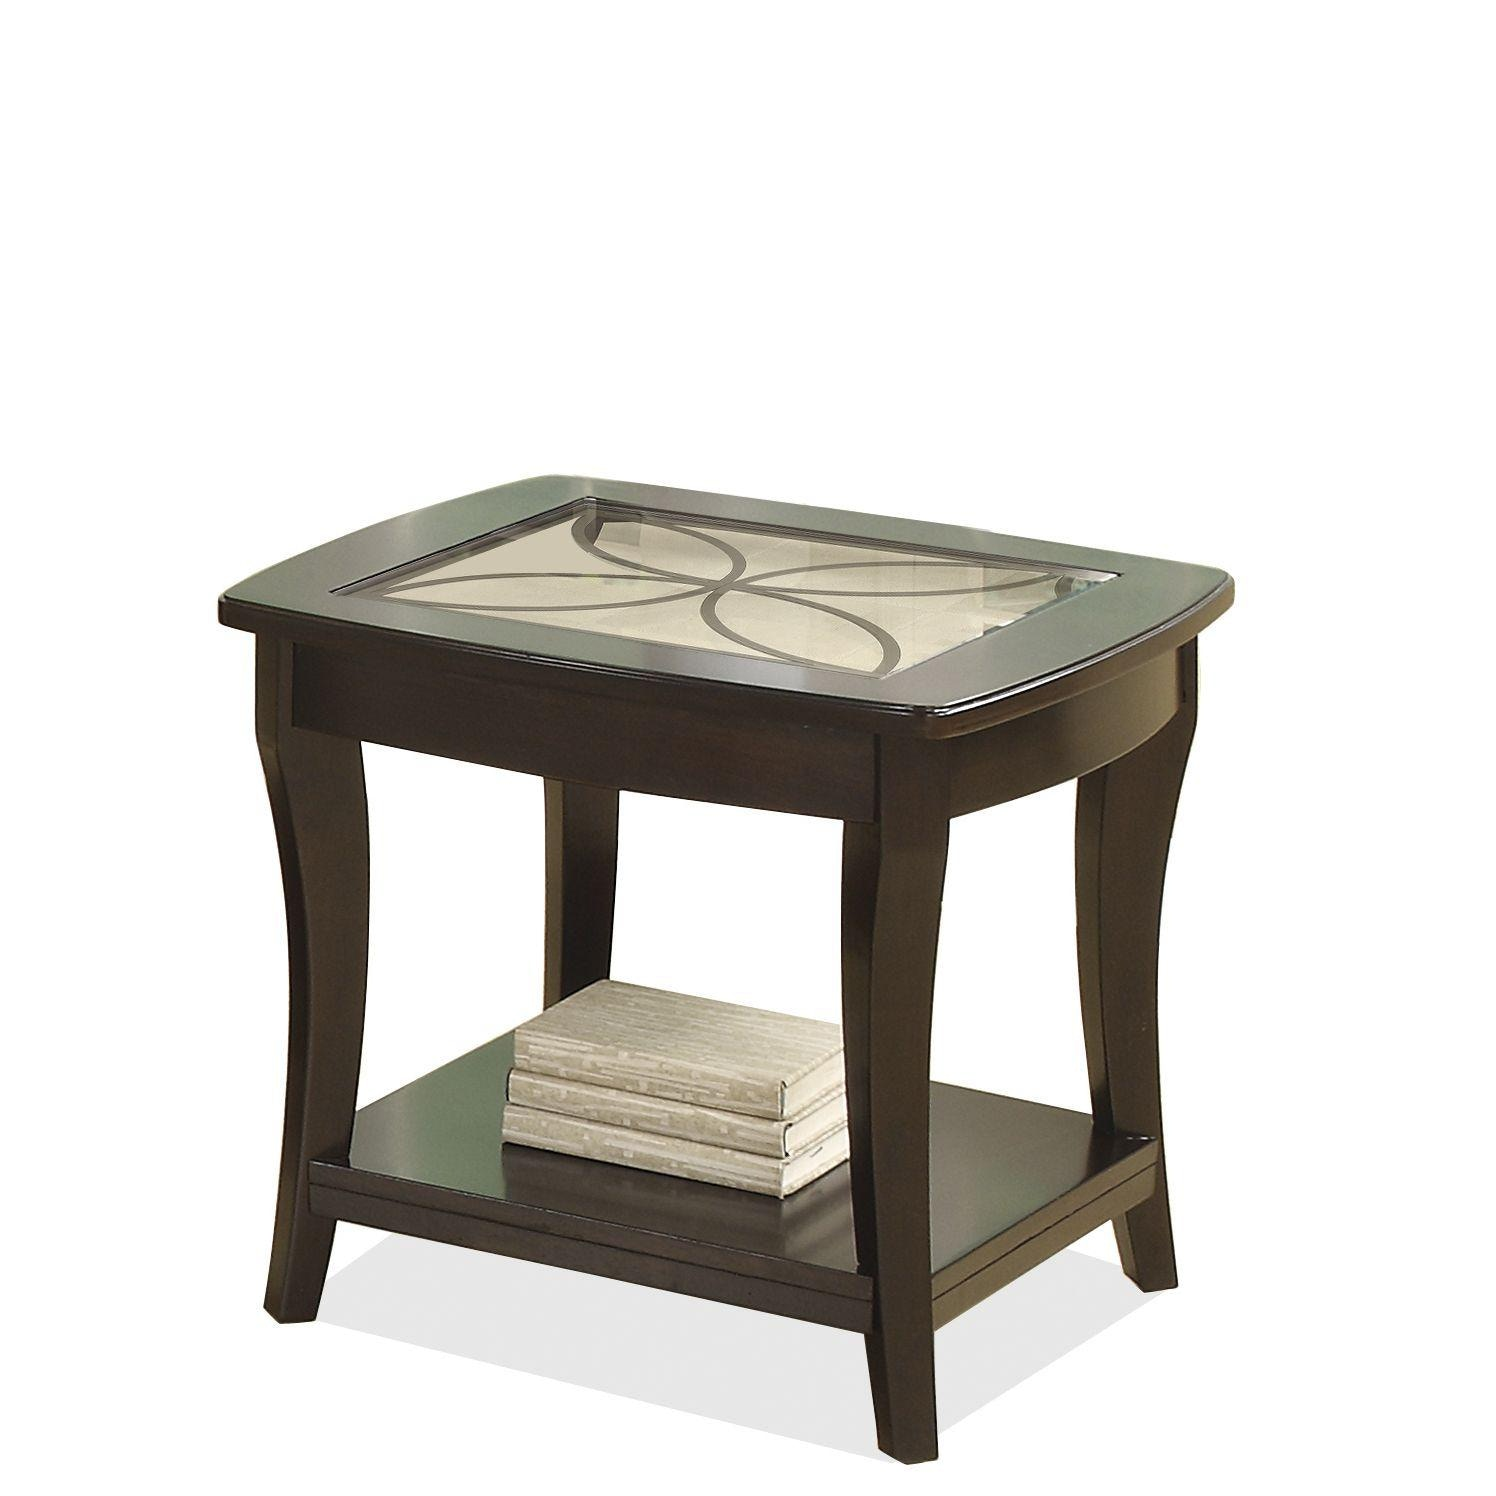 ron fiore century furniture. fiore furniture riverside side table 12406 a inside decor ron century